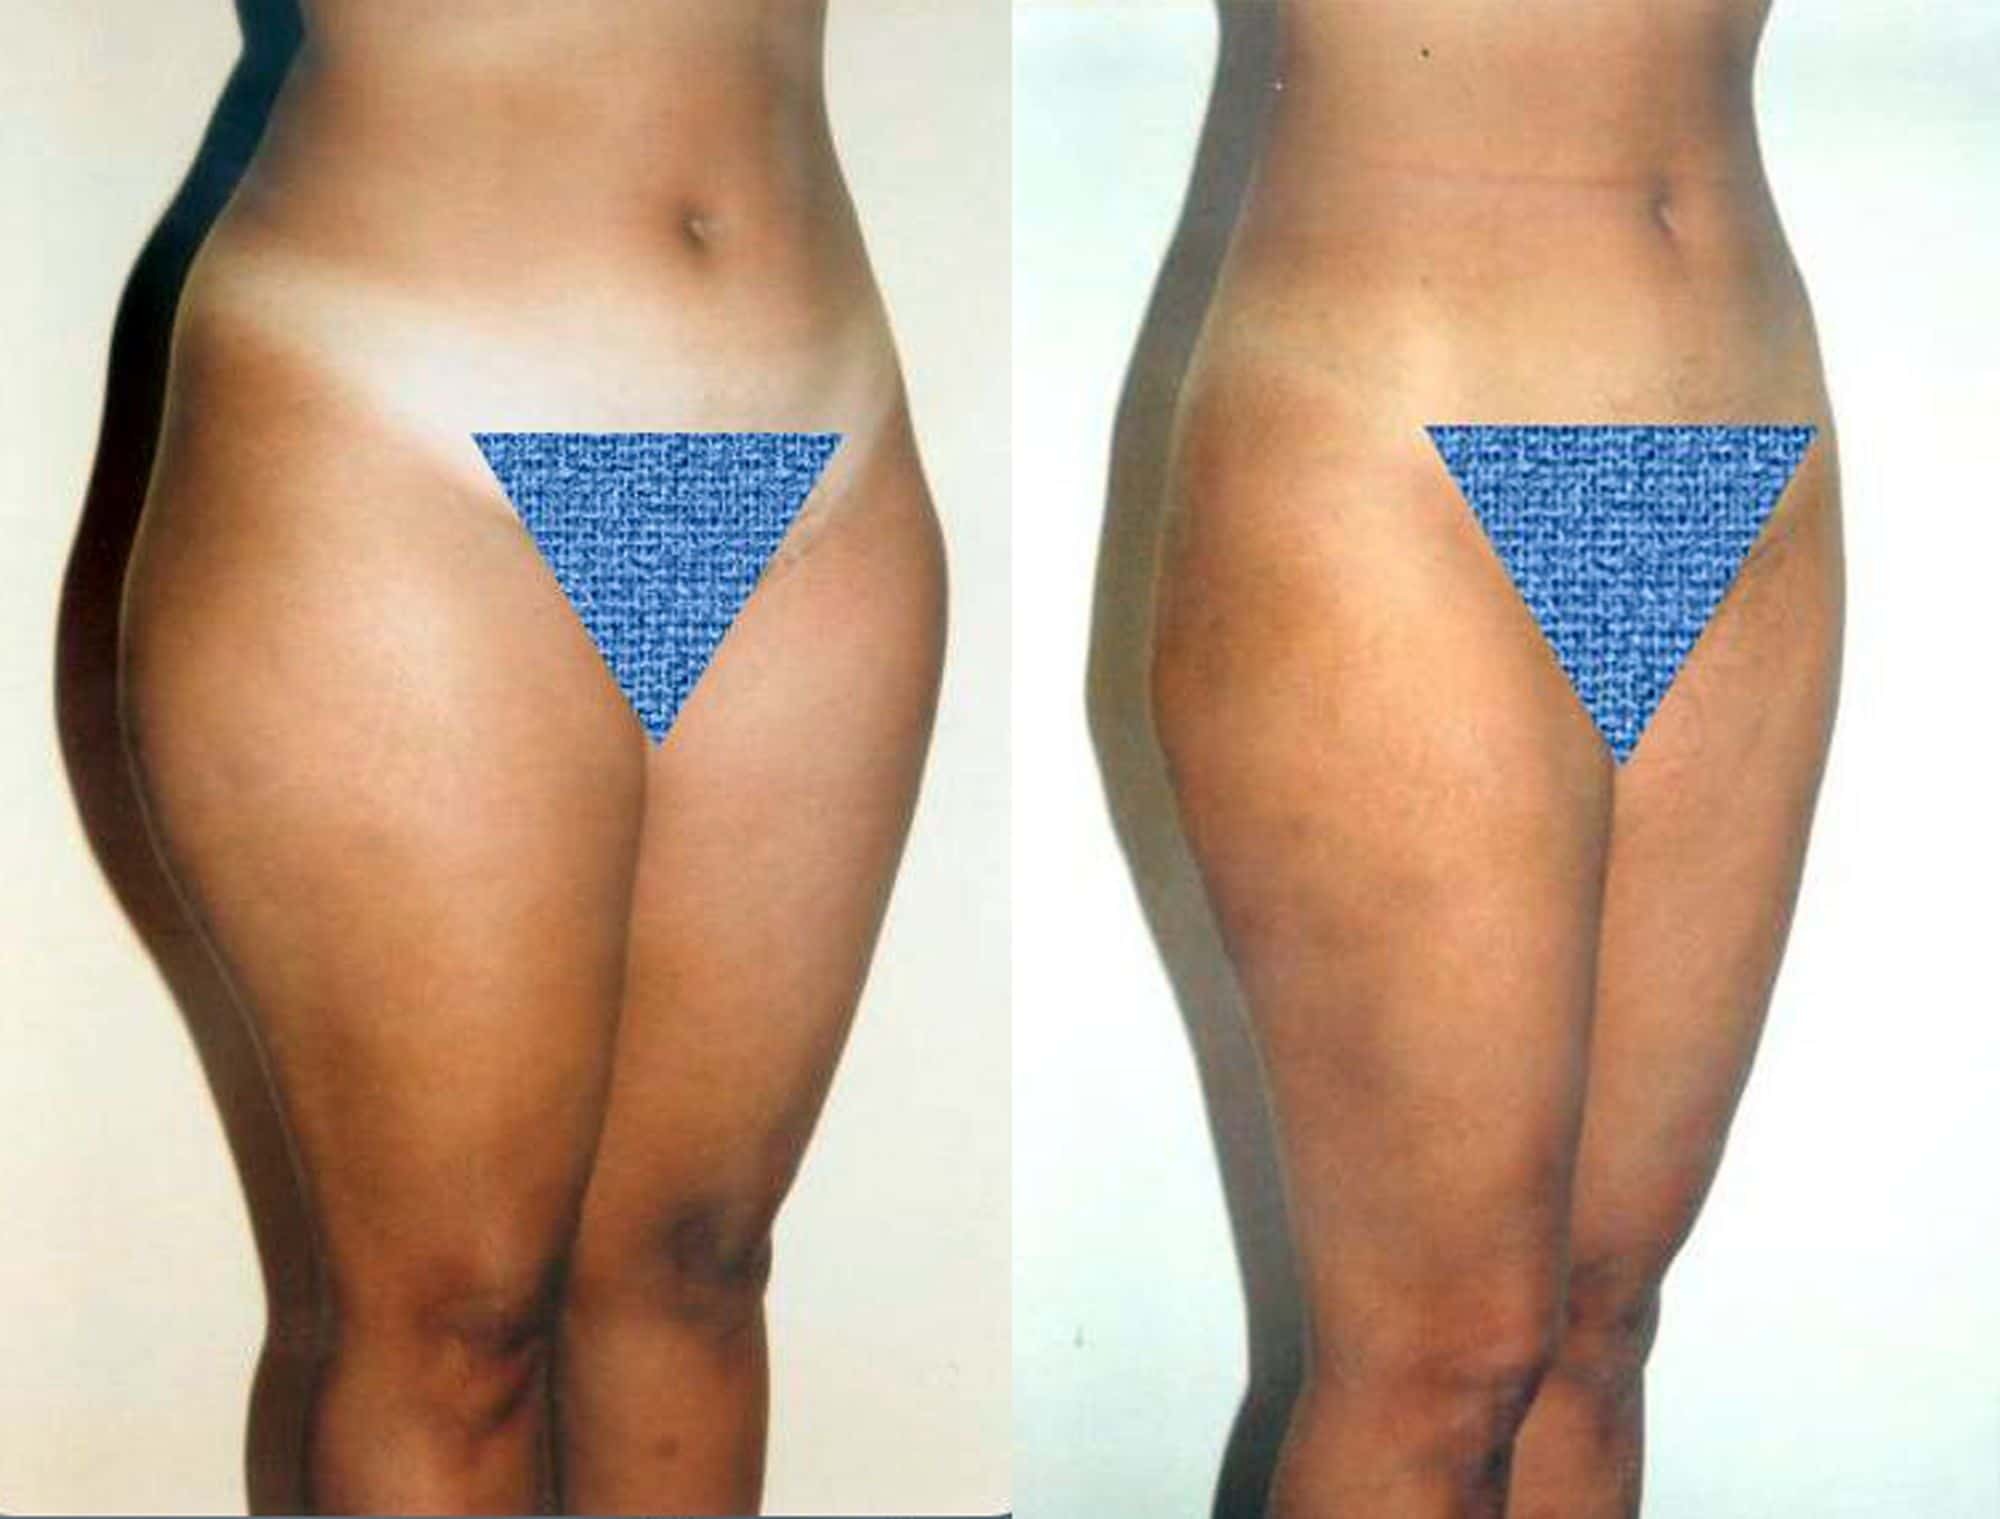 Leg liposuction - Picture 3